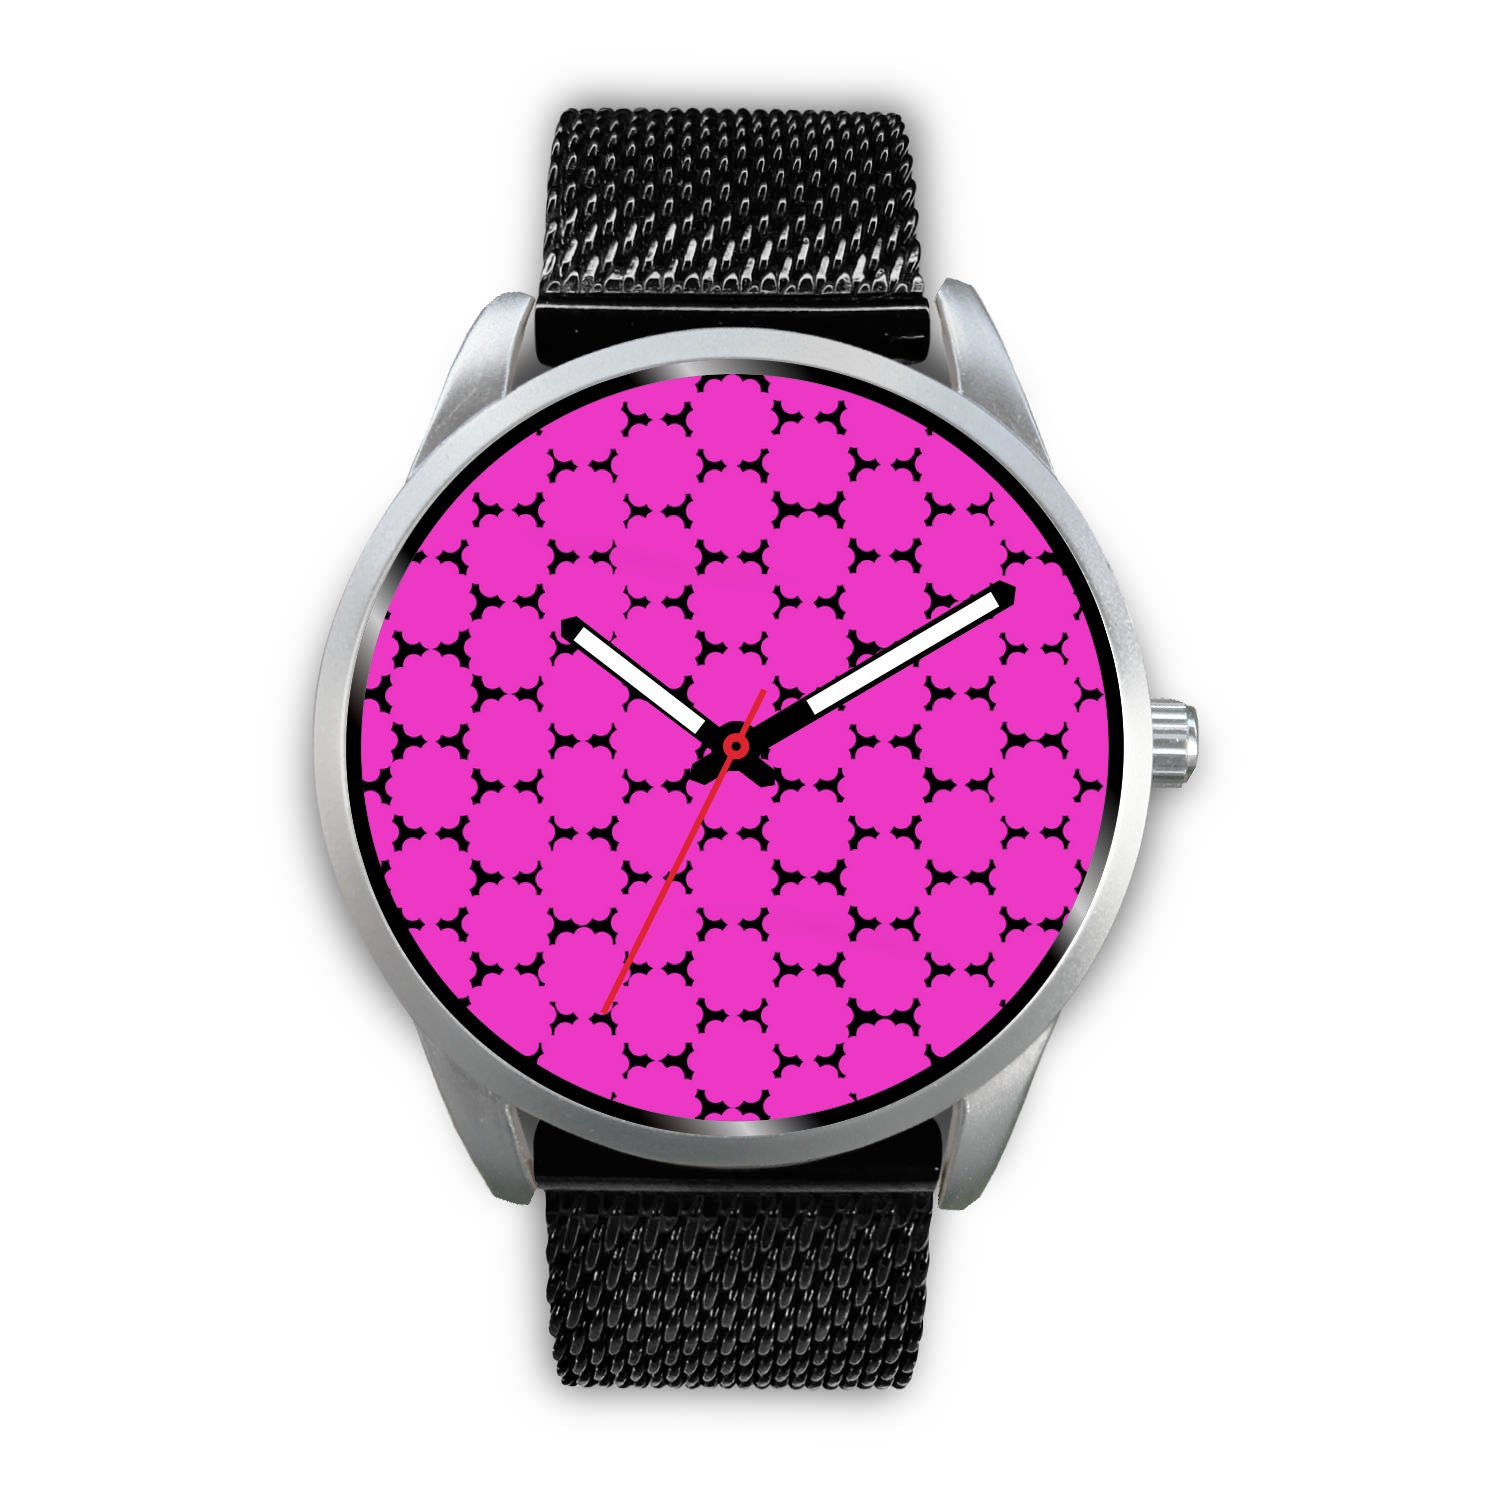 Silver Metal Mesh Watch - Pink and Black Dots